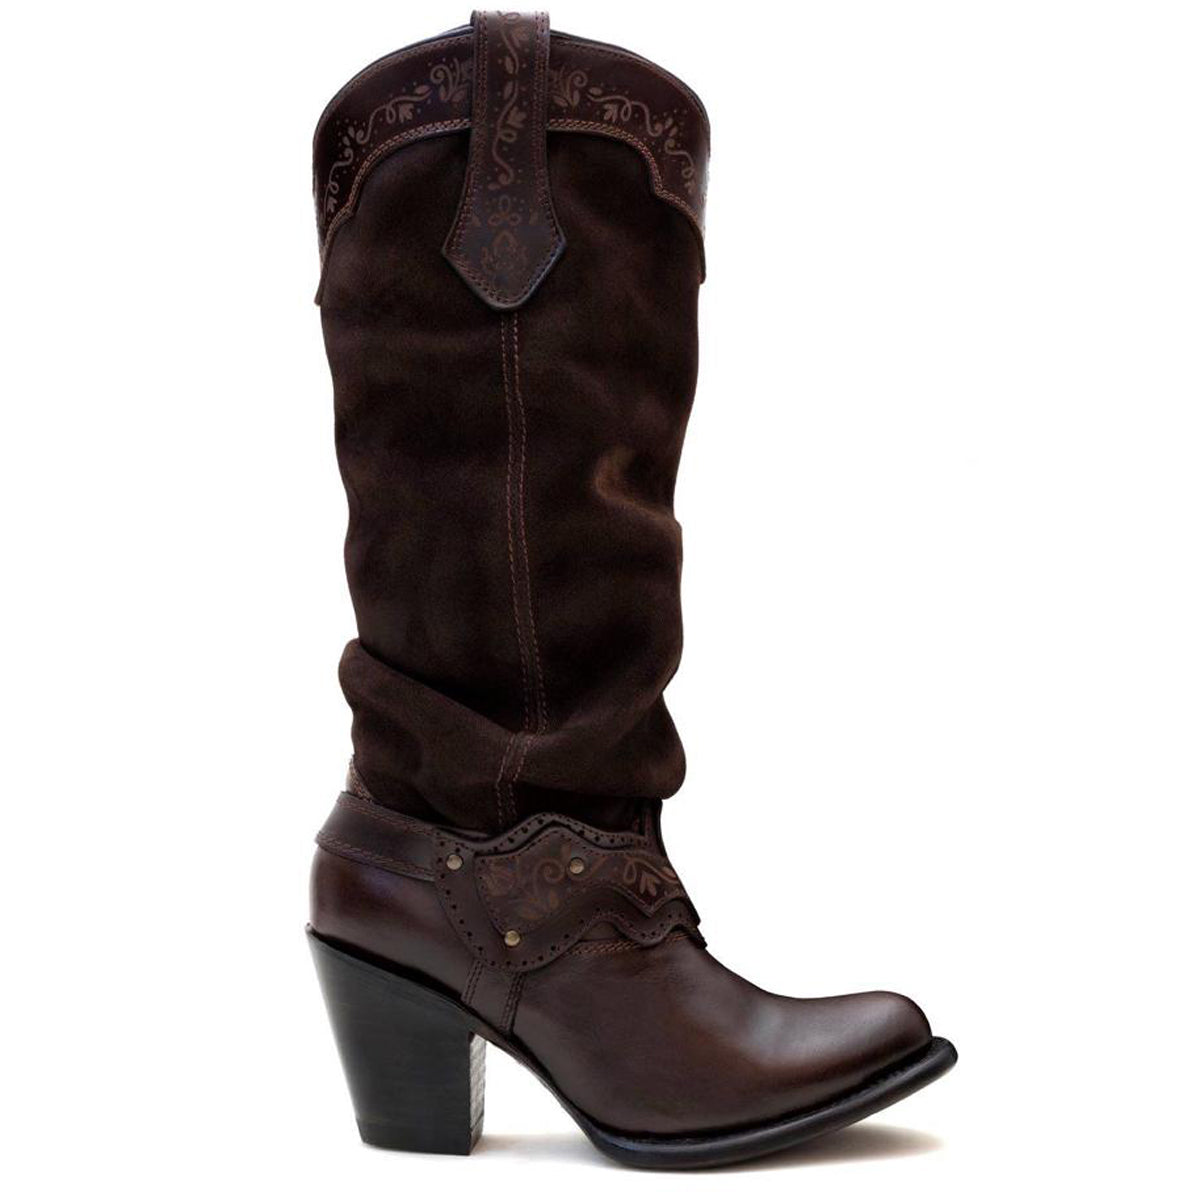 Sonora Brown - High Boot